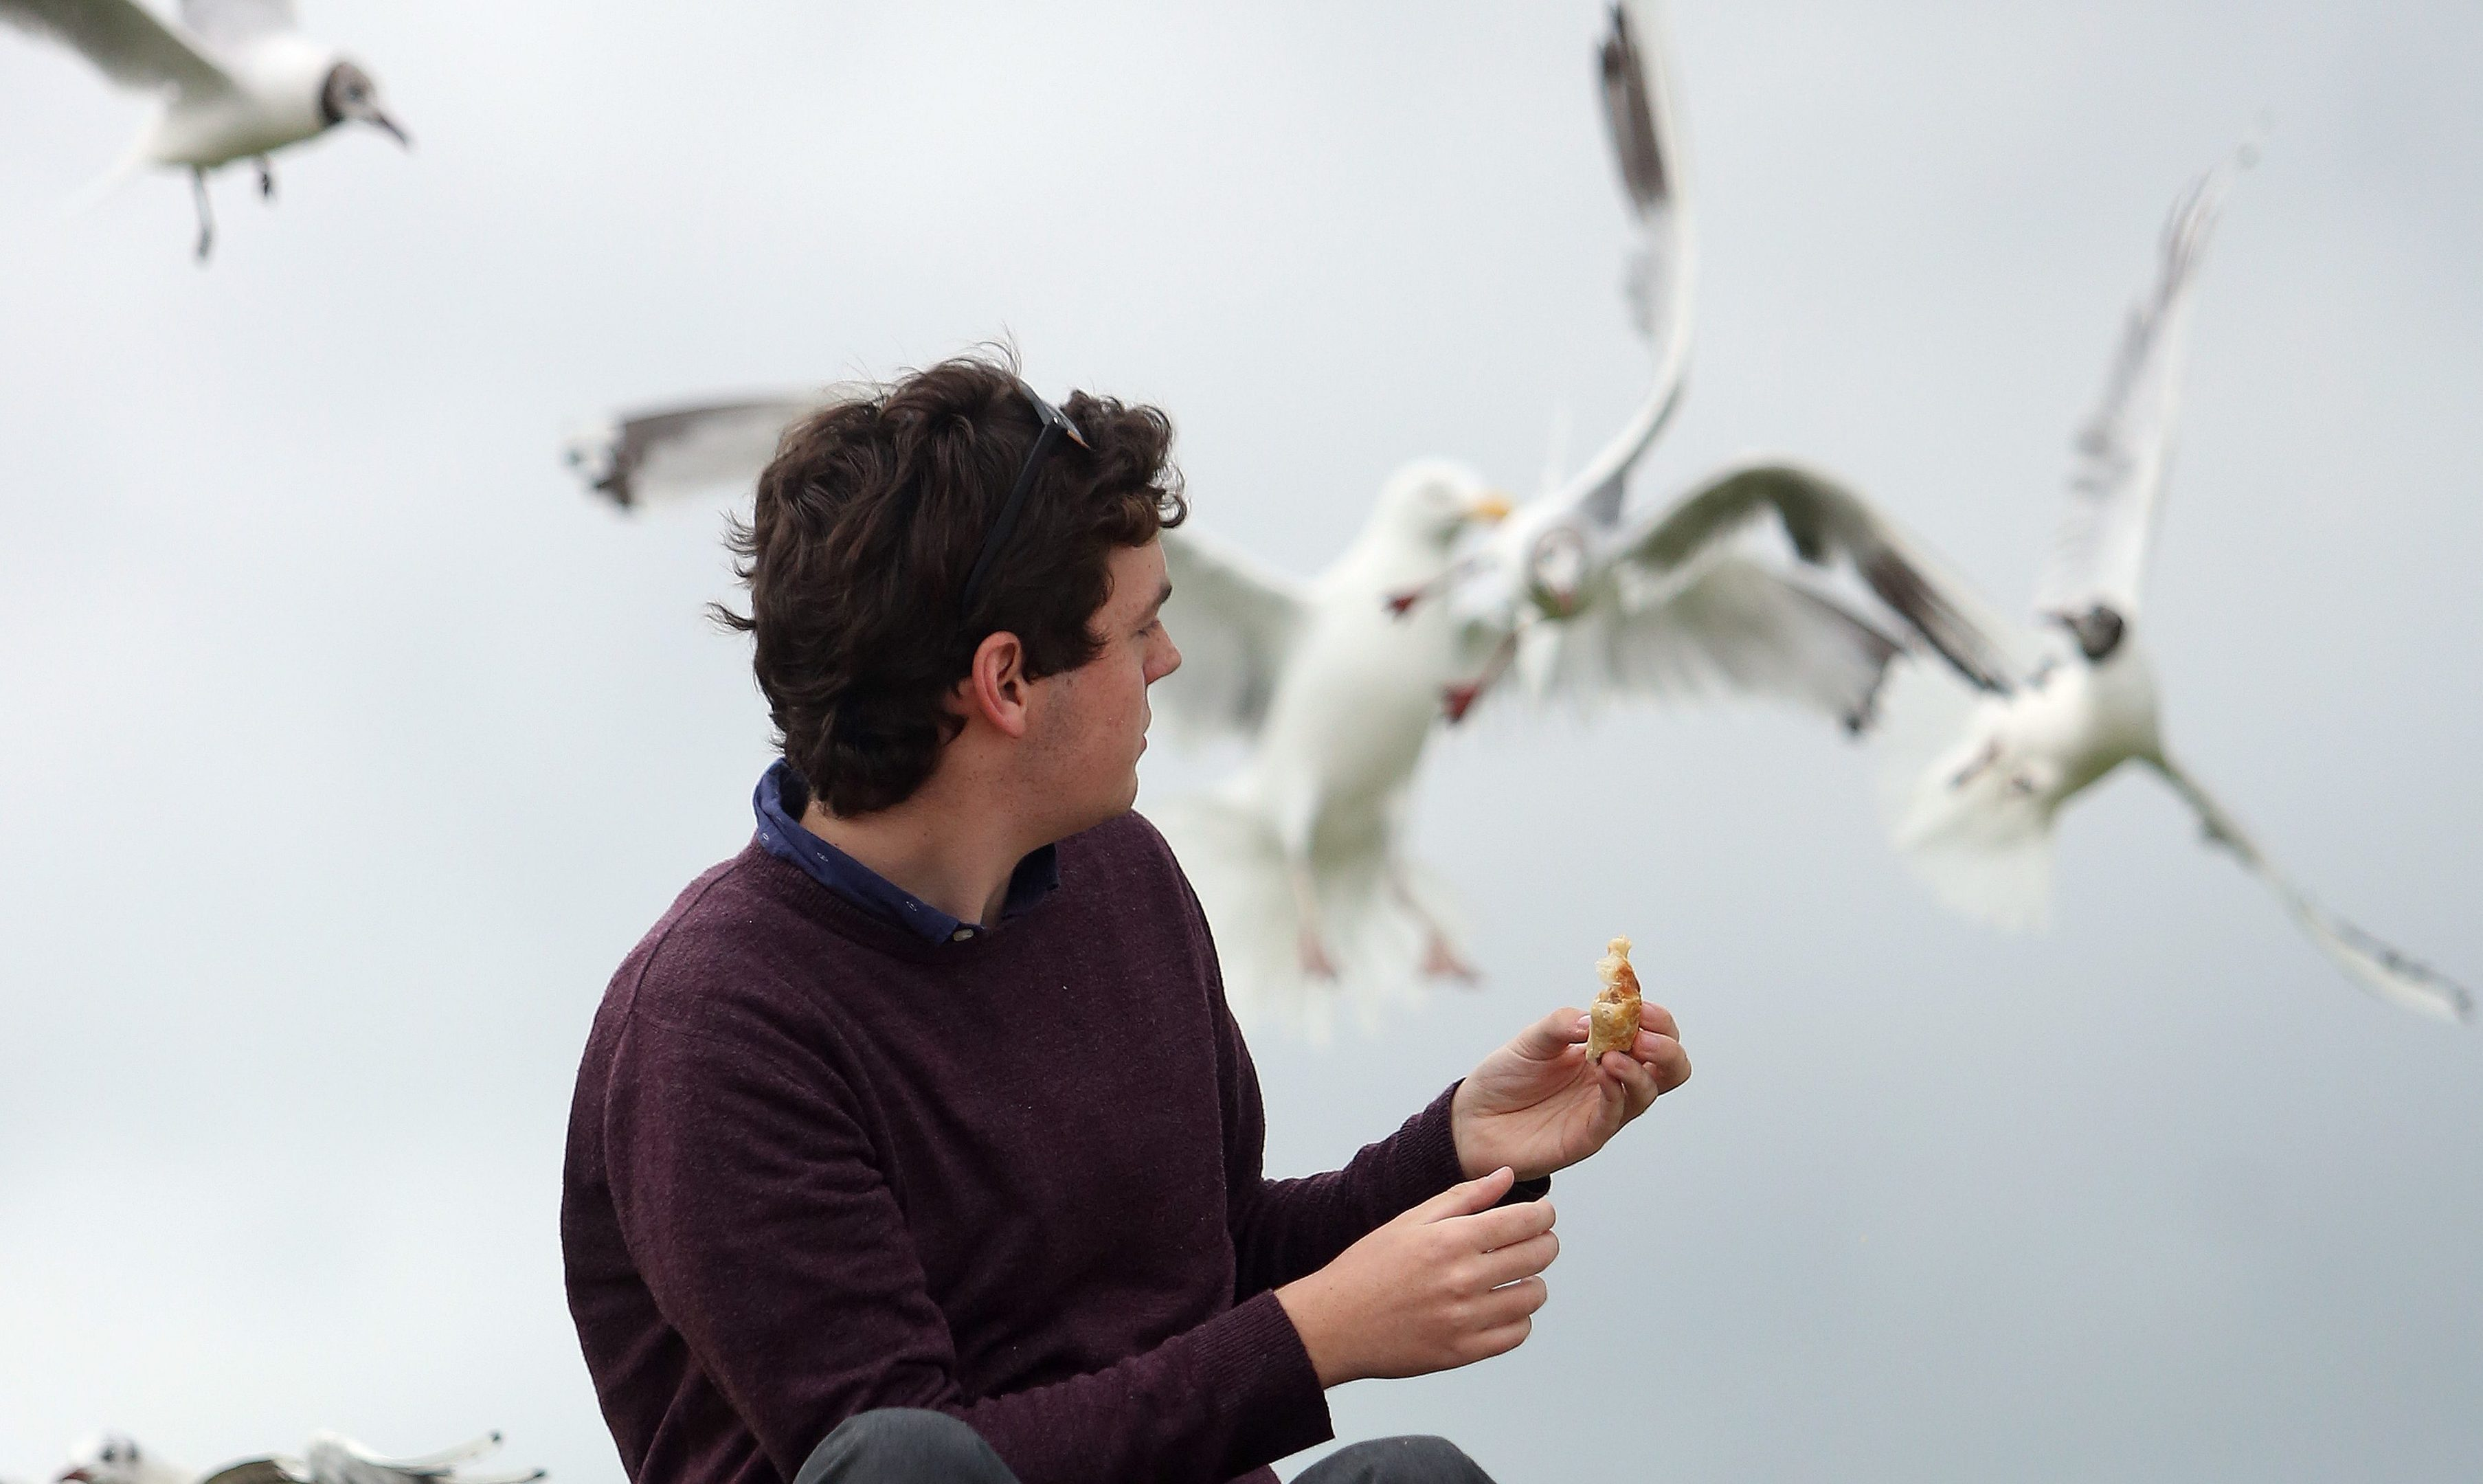 Gulls fight over food in Broughty Ferry.